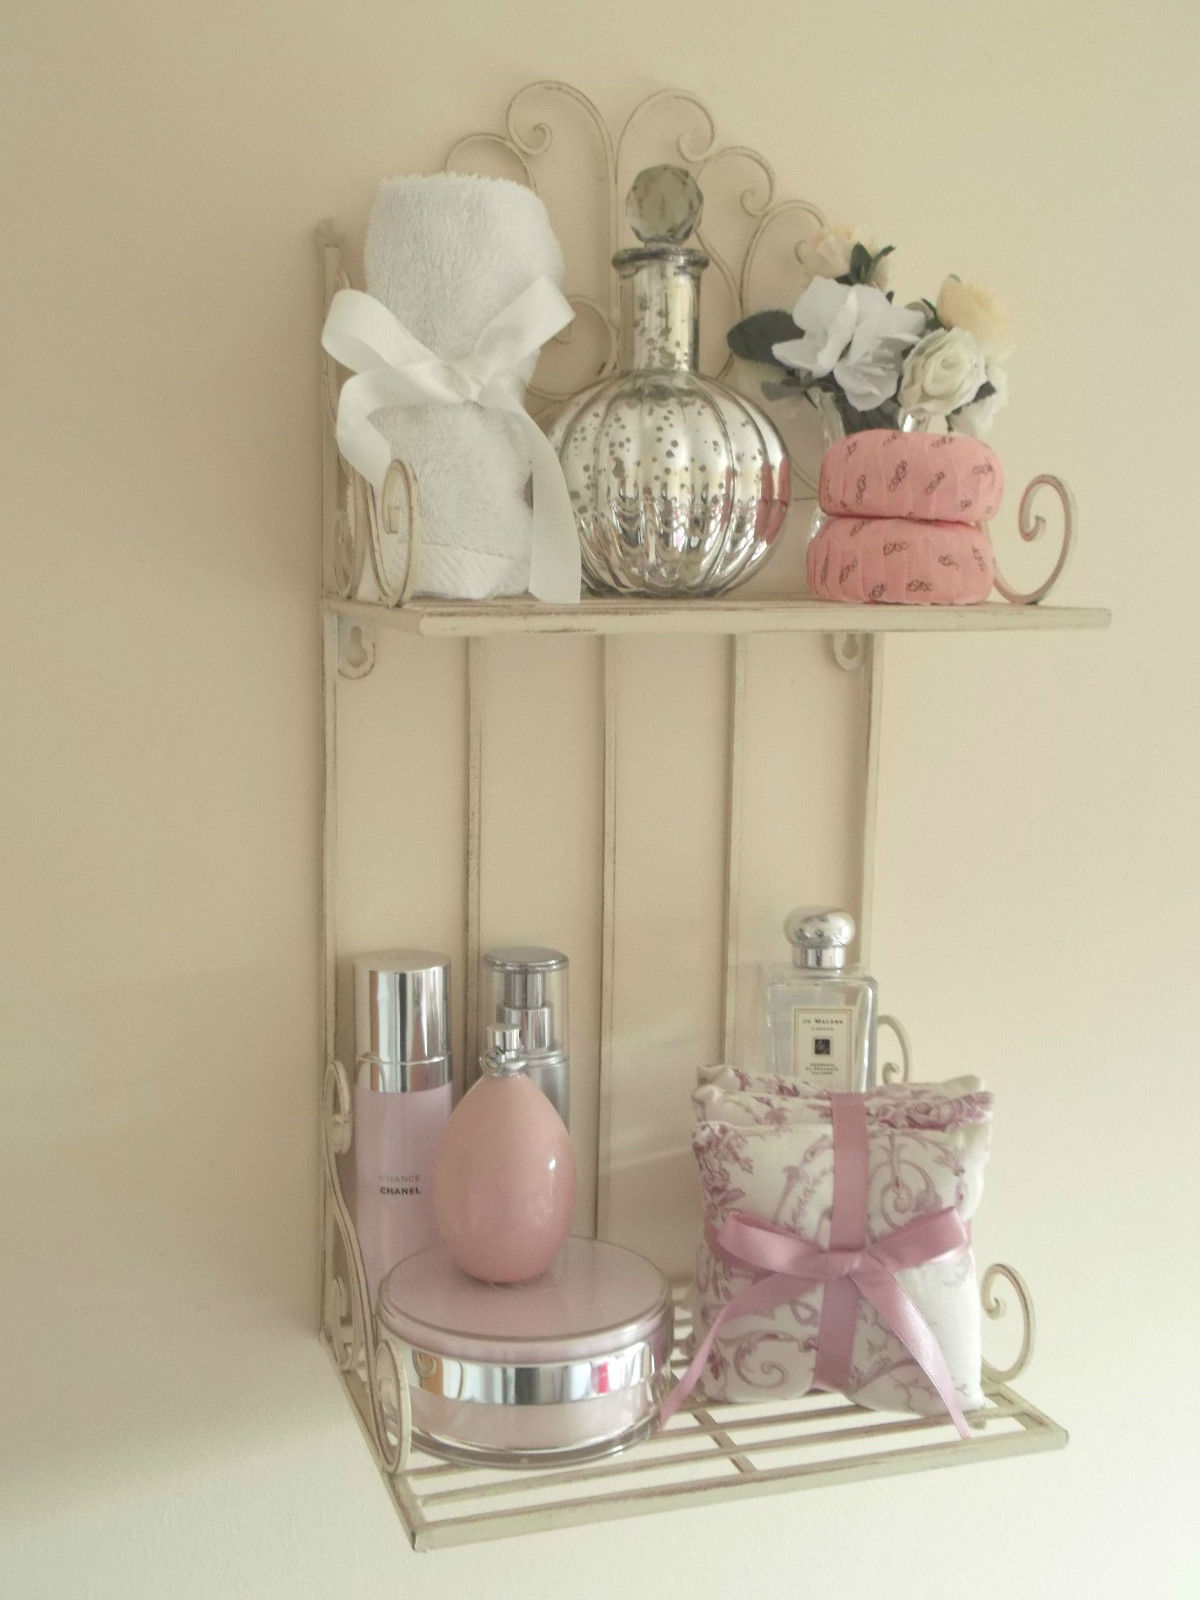 Antique french vintage style wall shelf unit storage cabinet shabby chic metal wall shelf unit storage display bathroom kitchen vintage style amipublicfo Image collections